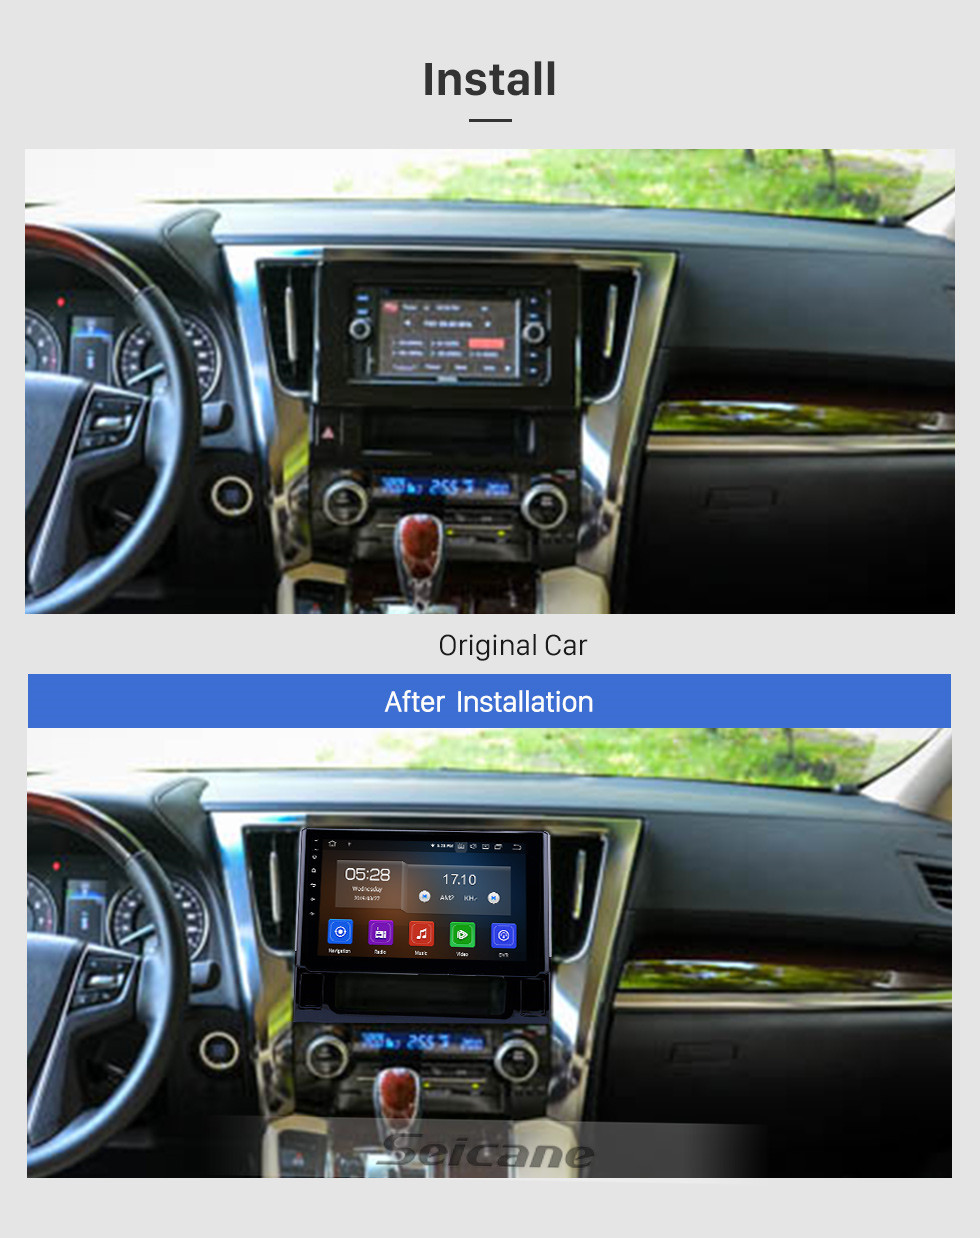 Seicane 10.1 inch Android 10.0 Radio for 2015 2016 Toyota Alphard Bluetooth Wifi HD Touchscreen GPS Navigation Carplay USB support DVR OBD2 Rearview camera